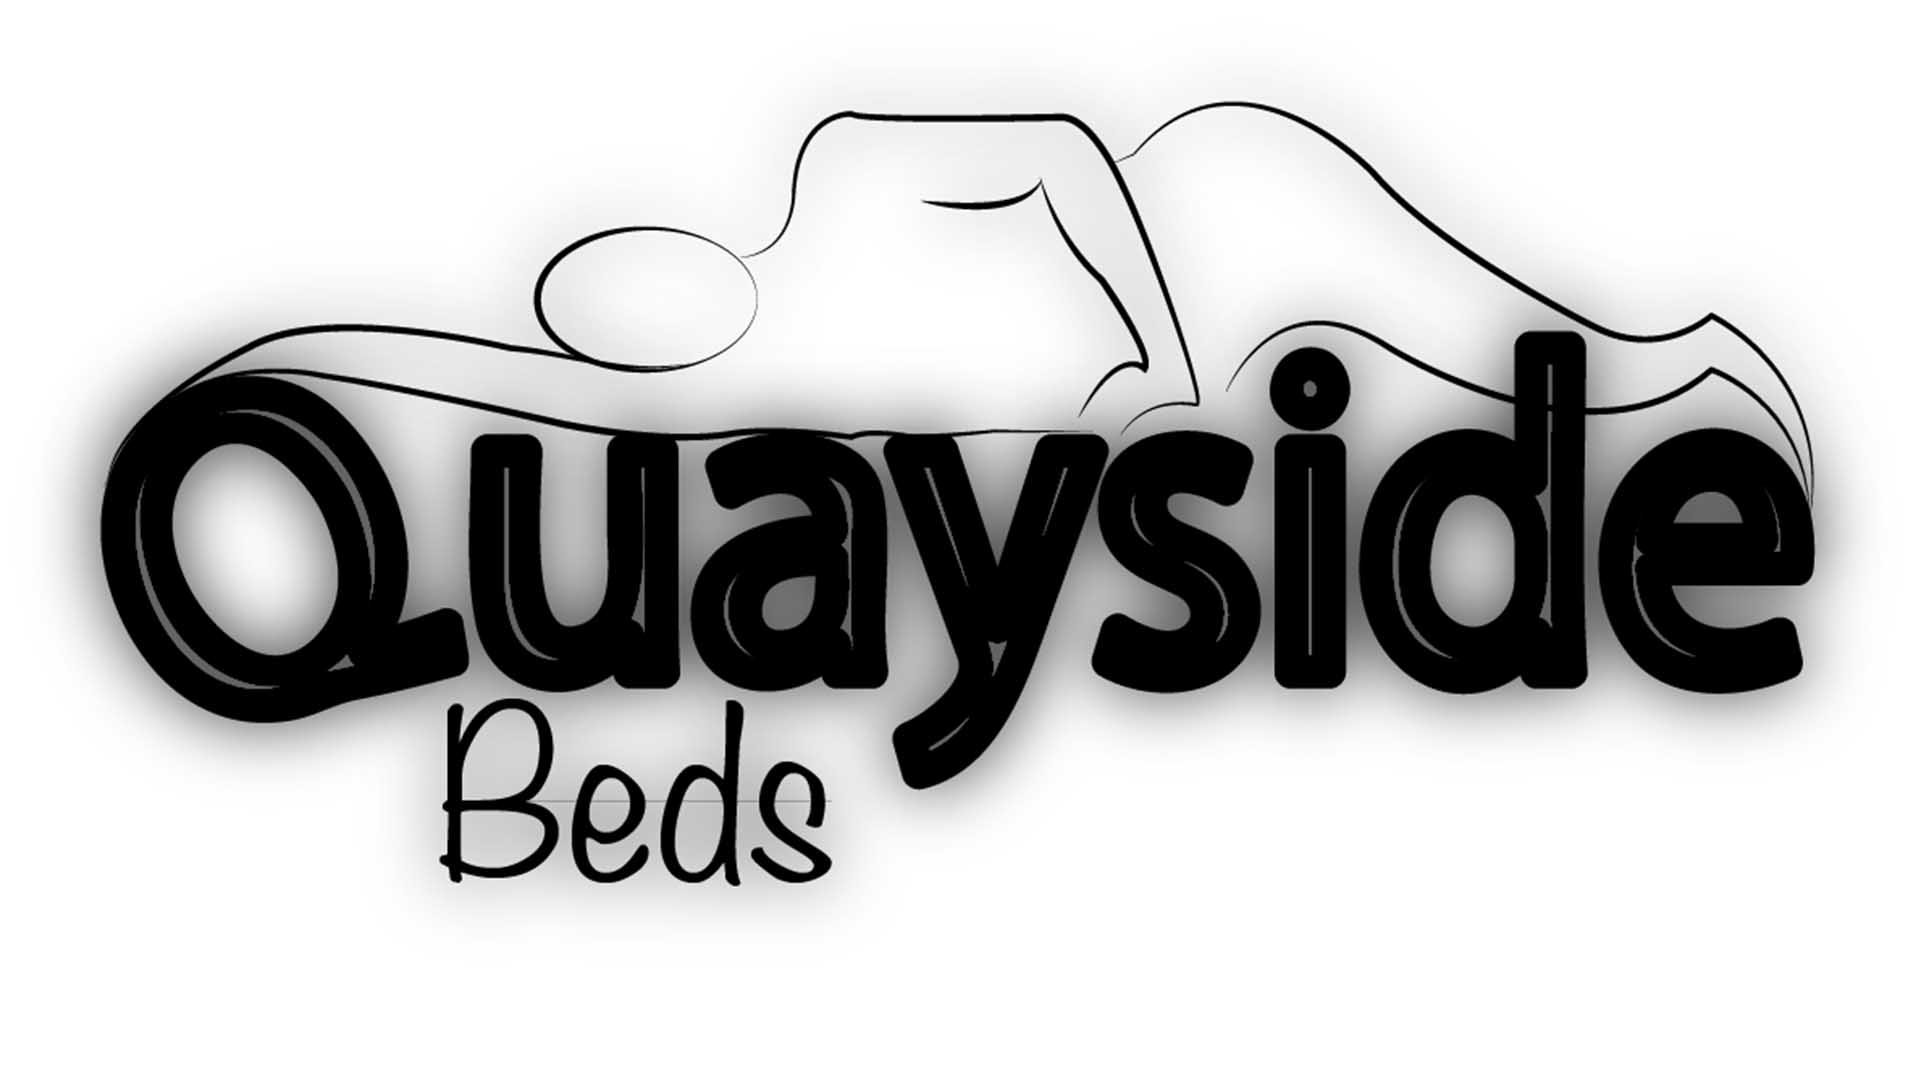 Quayside Beds - University Project.